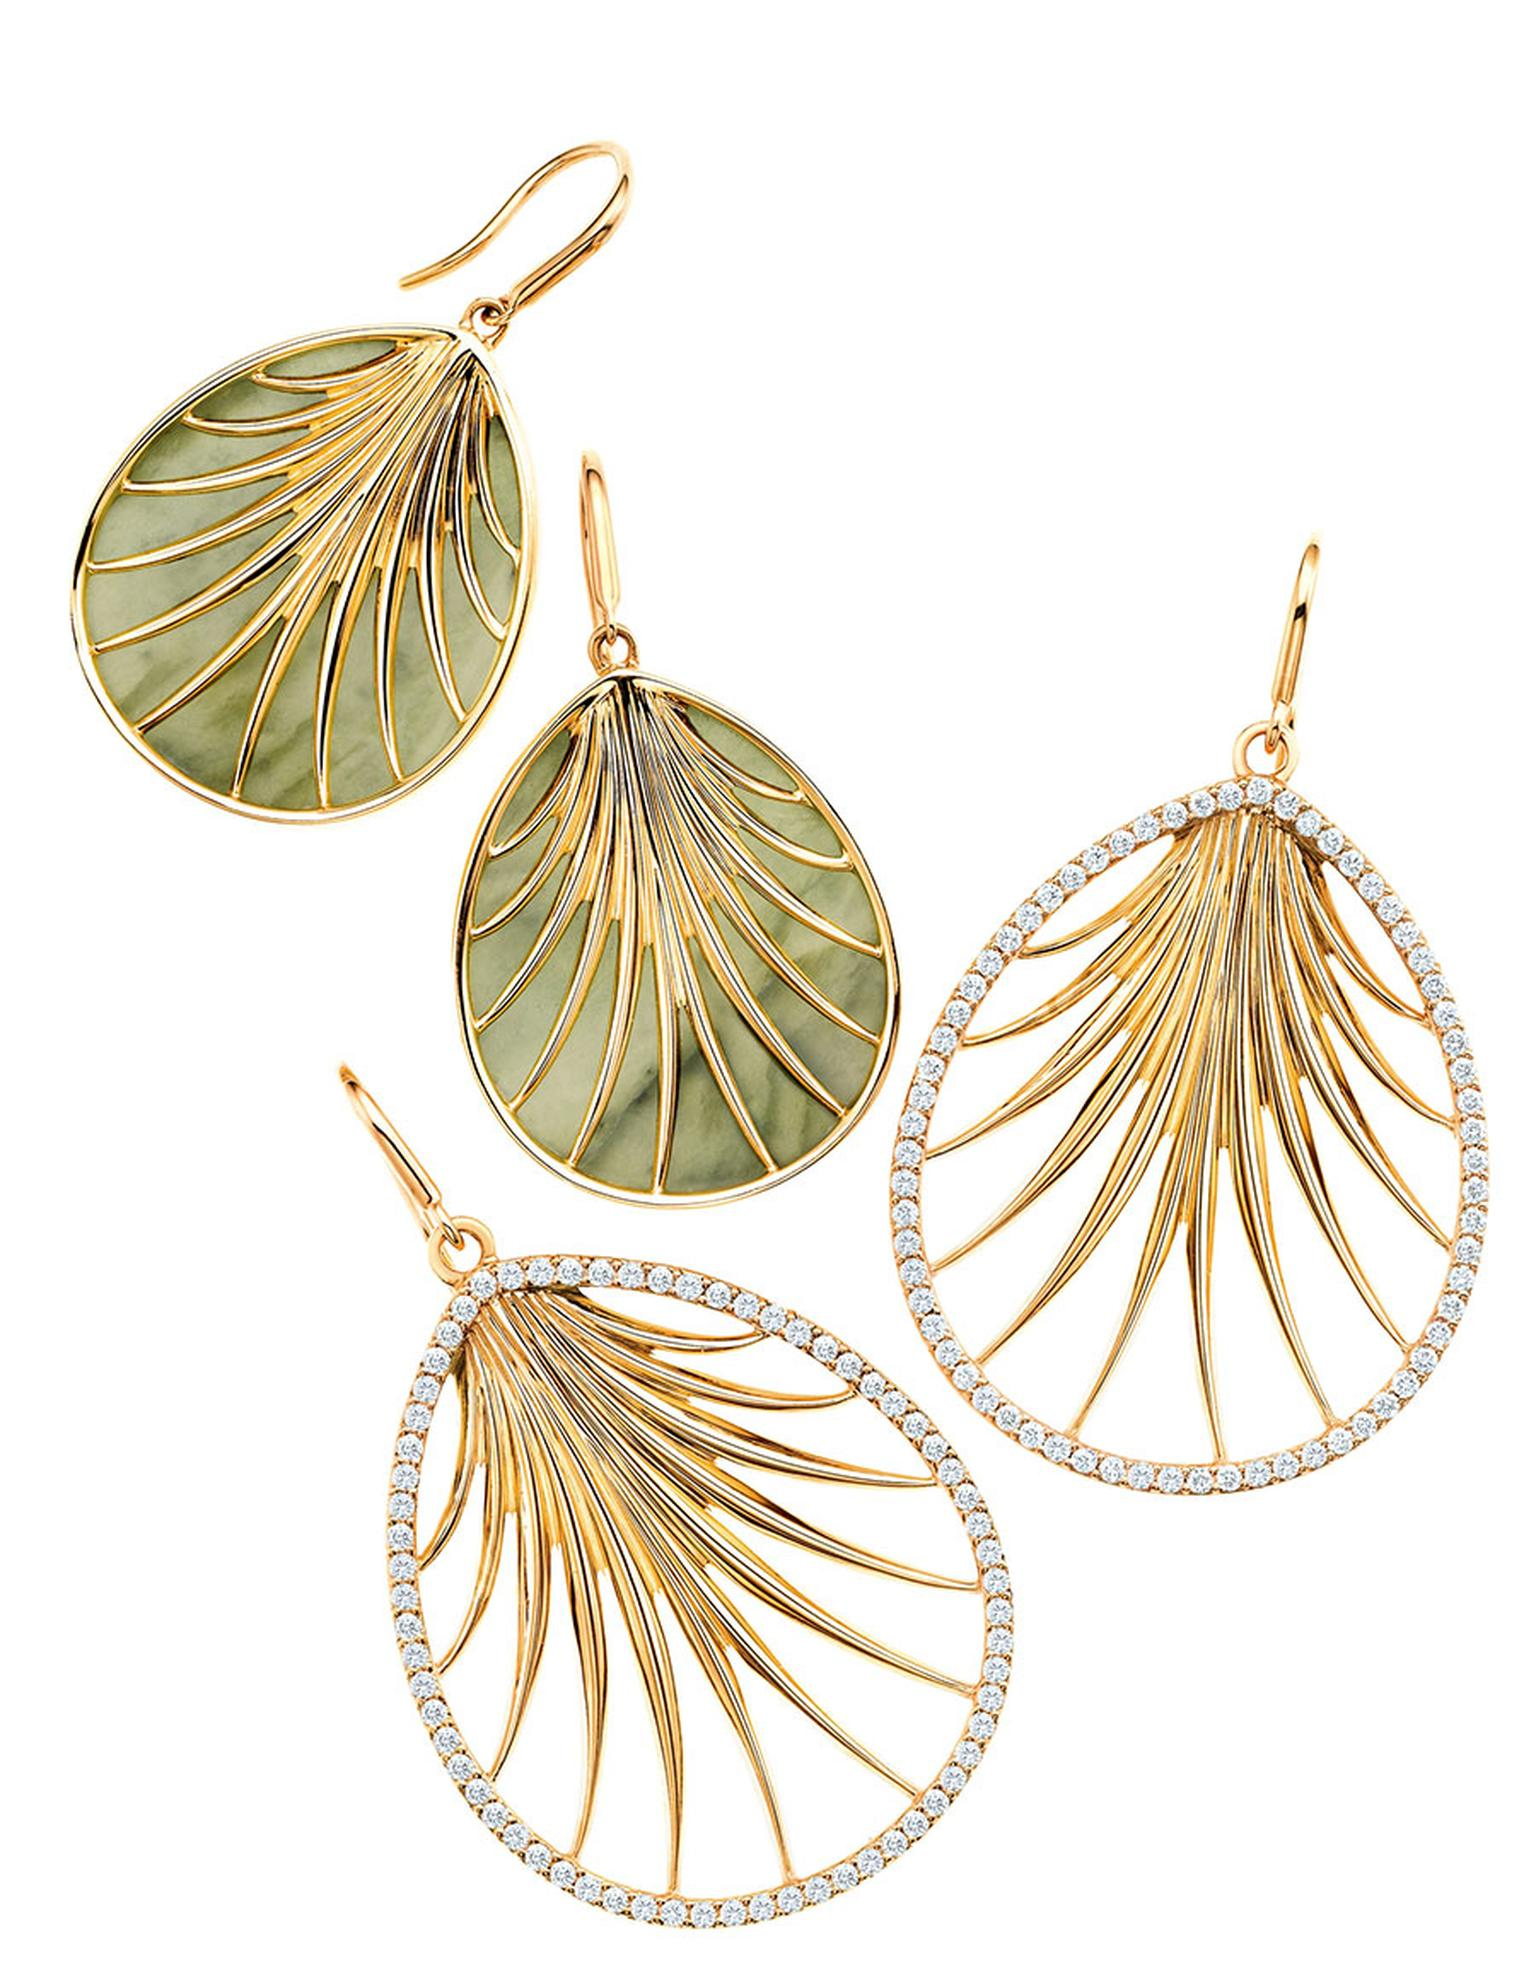 Tiffany-Villa-Paloma-earrings.jpg